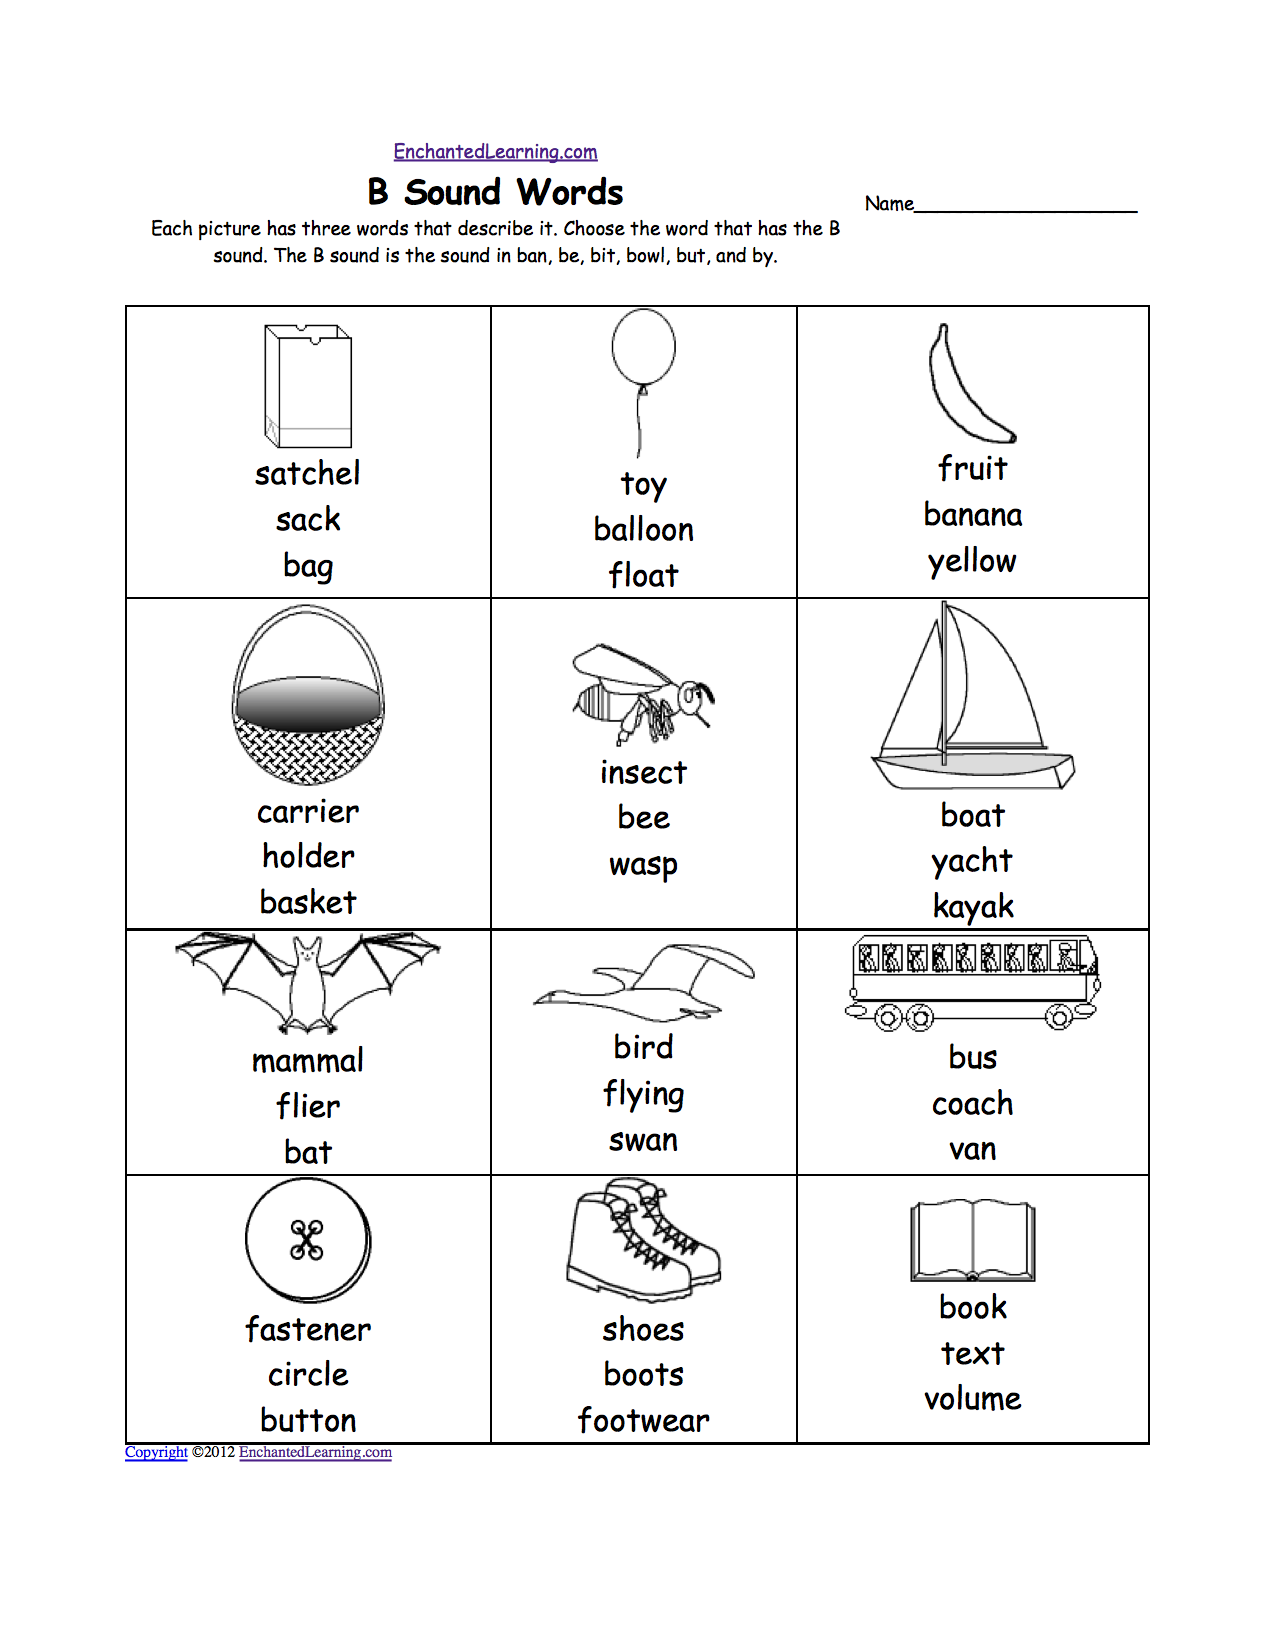 Aldiablosus  Pleasing Phonics Worksheets Multiple Choice Worksheets To Print  With Outstanding Quotbquot Sound Phonics Worksheet Multiple Choice Each Picture Has Three Words That Describe It Choose The Word That Has A Quotbquot Sound The Quotbquot Sound Is The Sound  With Extraordinary Dichotomous Key Worksheet Also Adding And Subtracting Polynomials Worksheet In Addition Math Worksheet Generator And Periodic Trends Worksheet Answers As Well As Equivalent Fractions Worksheets Additionally Types Of Chemical Reactions Worksheet From Enchantedlearningcom With Aldiablosus  Outstanding Phonics Worksheets Multiple Choice Worksheets To Print  With Extraordinary Quotbquot Sound Phonics Worksheet Multiple Choice Each Picture Has Three Words That Describe It Choose The Word That Has A Quotbquot Sound The Quotbquot Sound Is The Sound  And Pleasing Dichotomous Key Worksheet Also Adding And Subtracting Polynomials Worksheet In Addition Math Worksheet Generator From Enchantedlearningcom